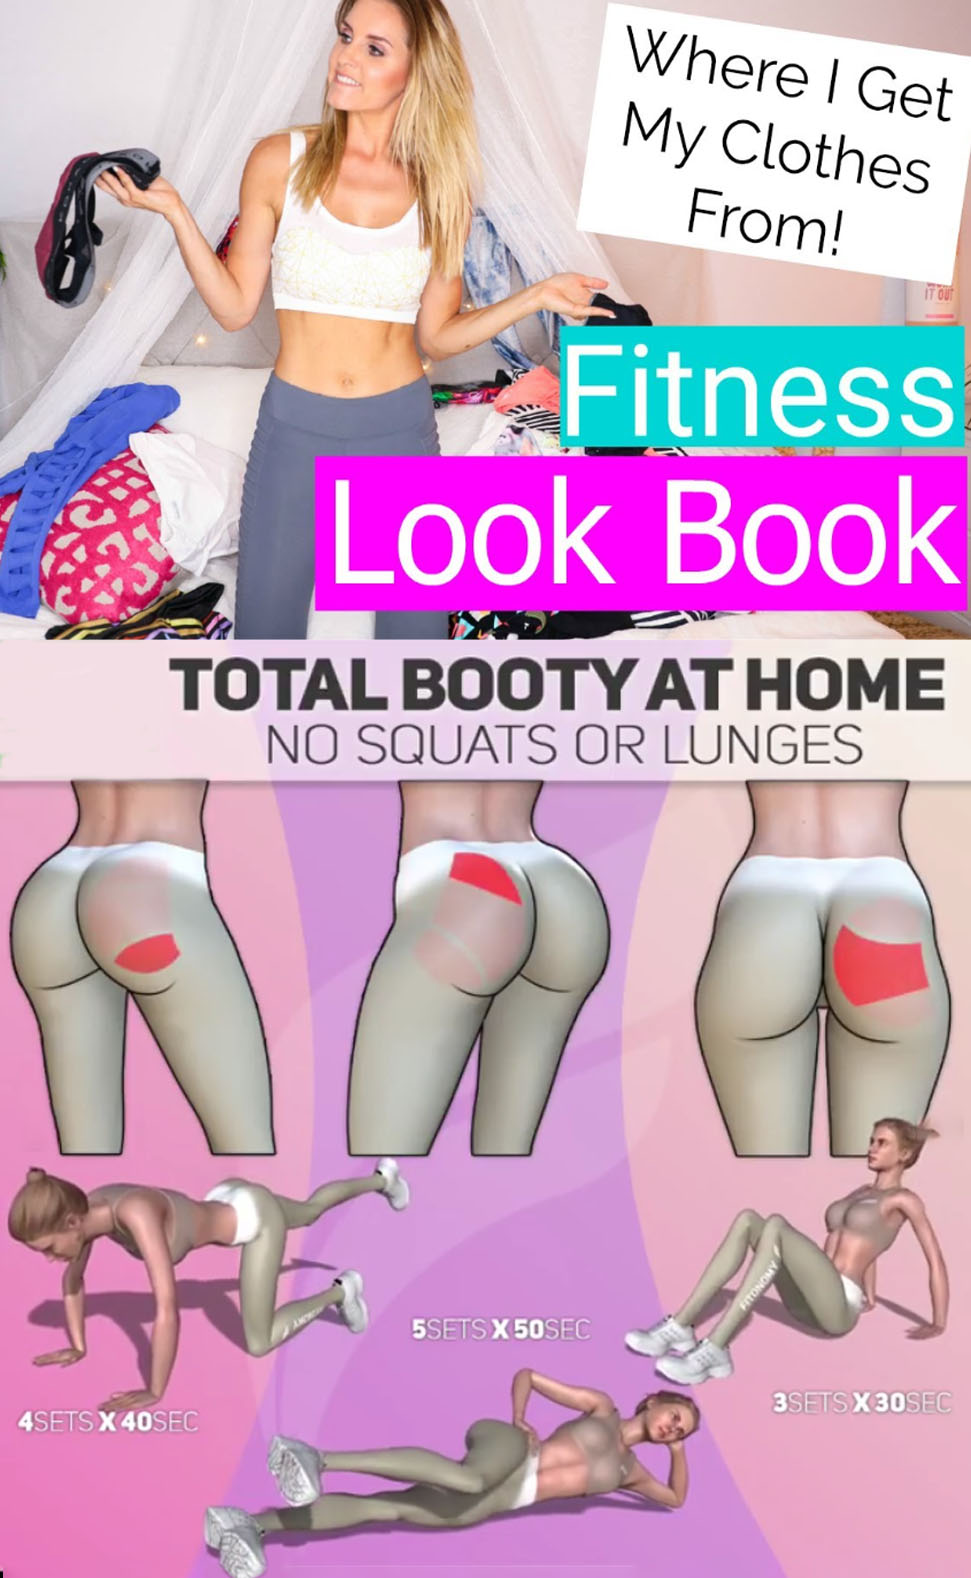 TOTAL BOOTY AT HOME NO SQUATS OR LUNGES